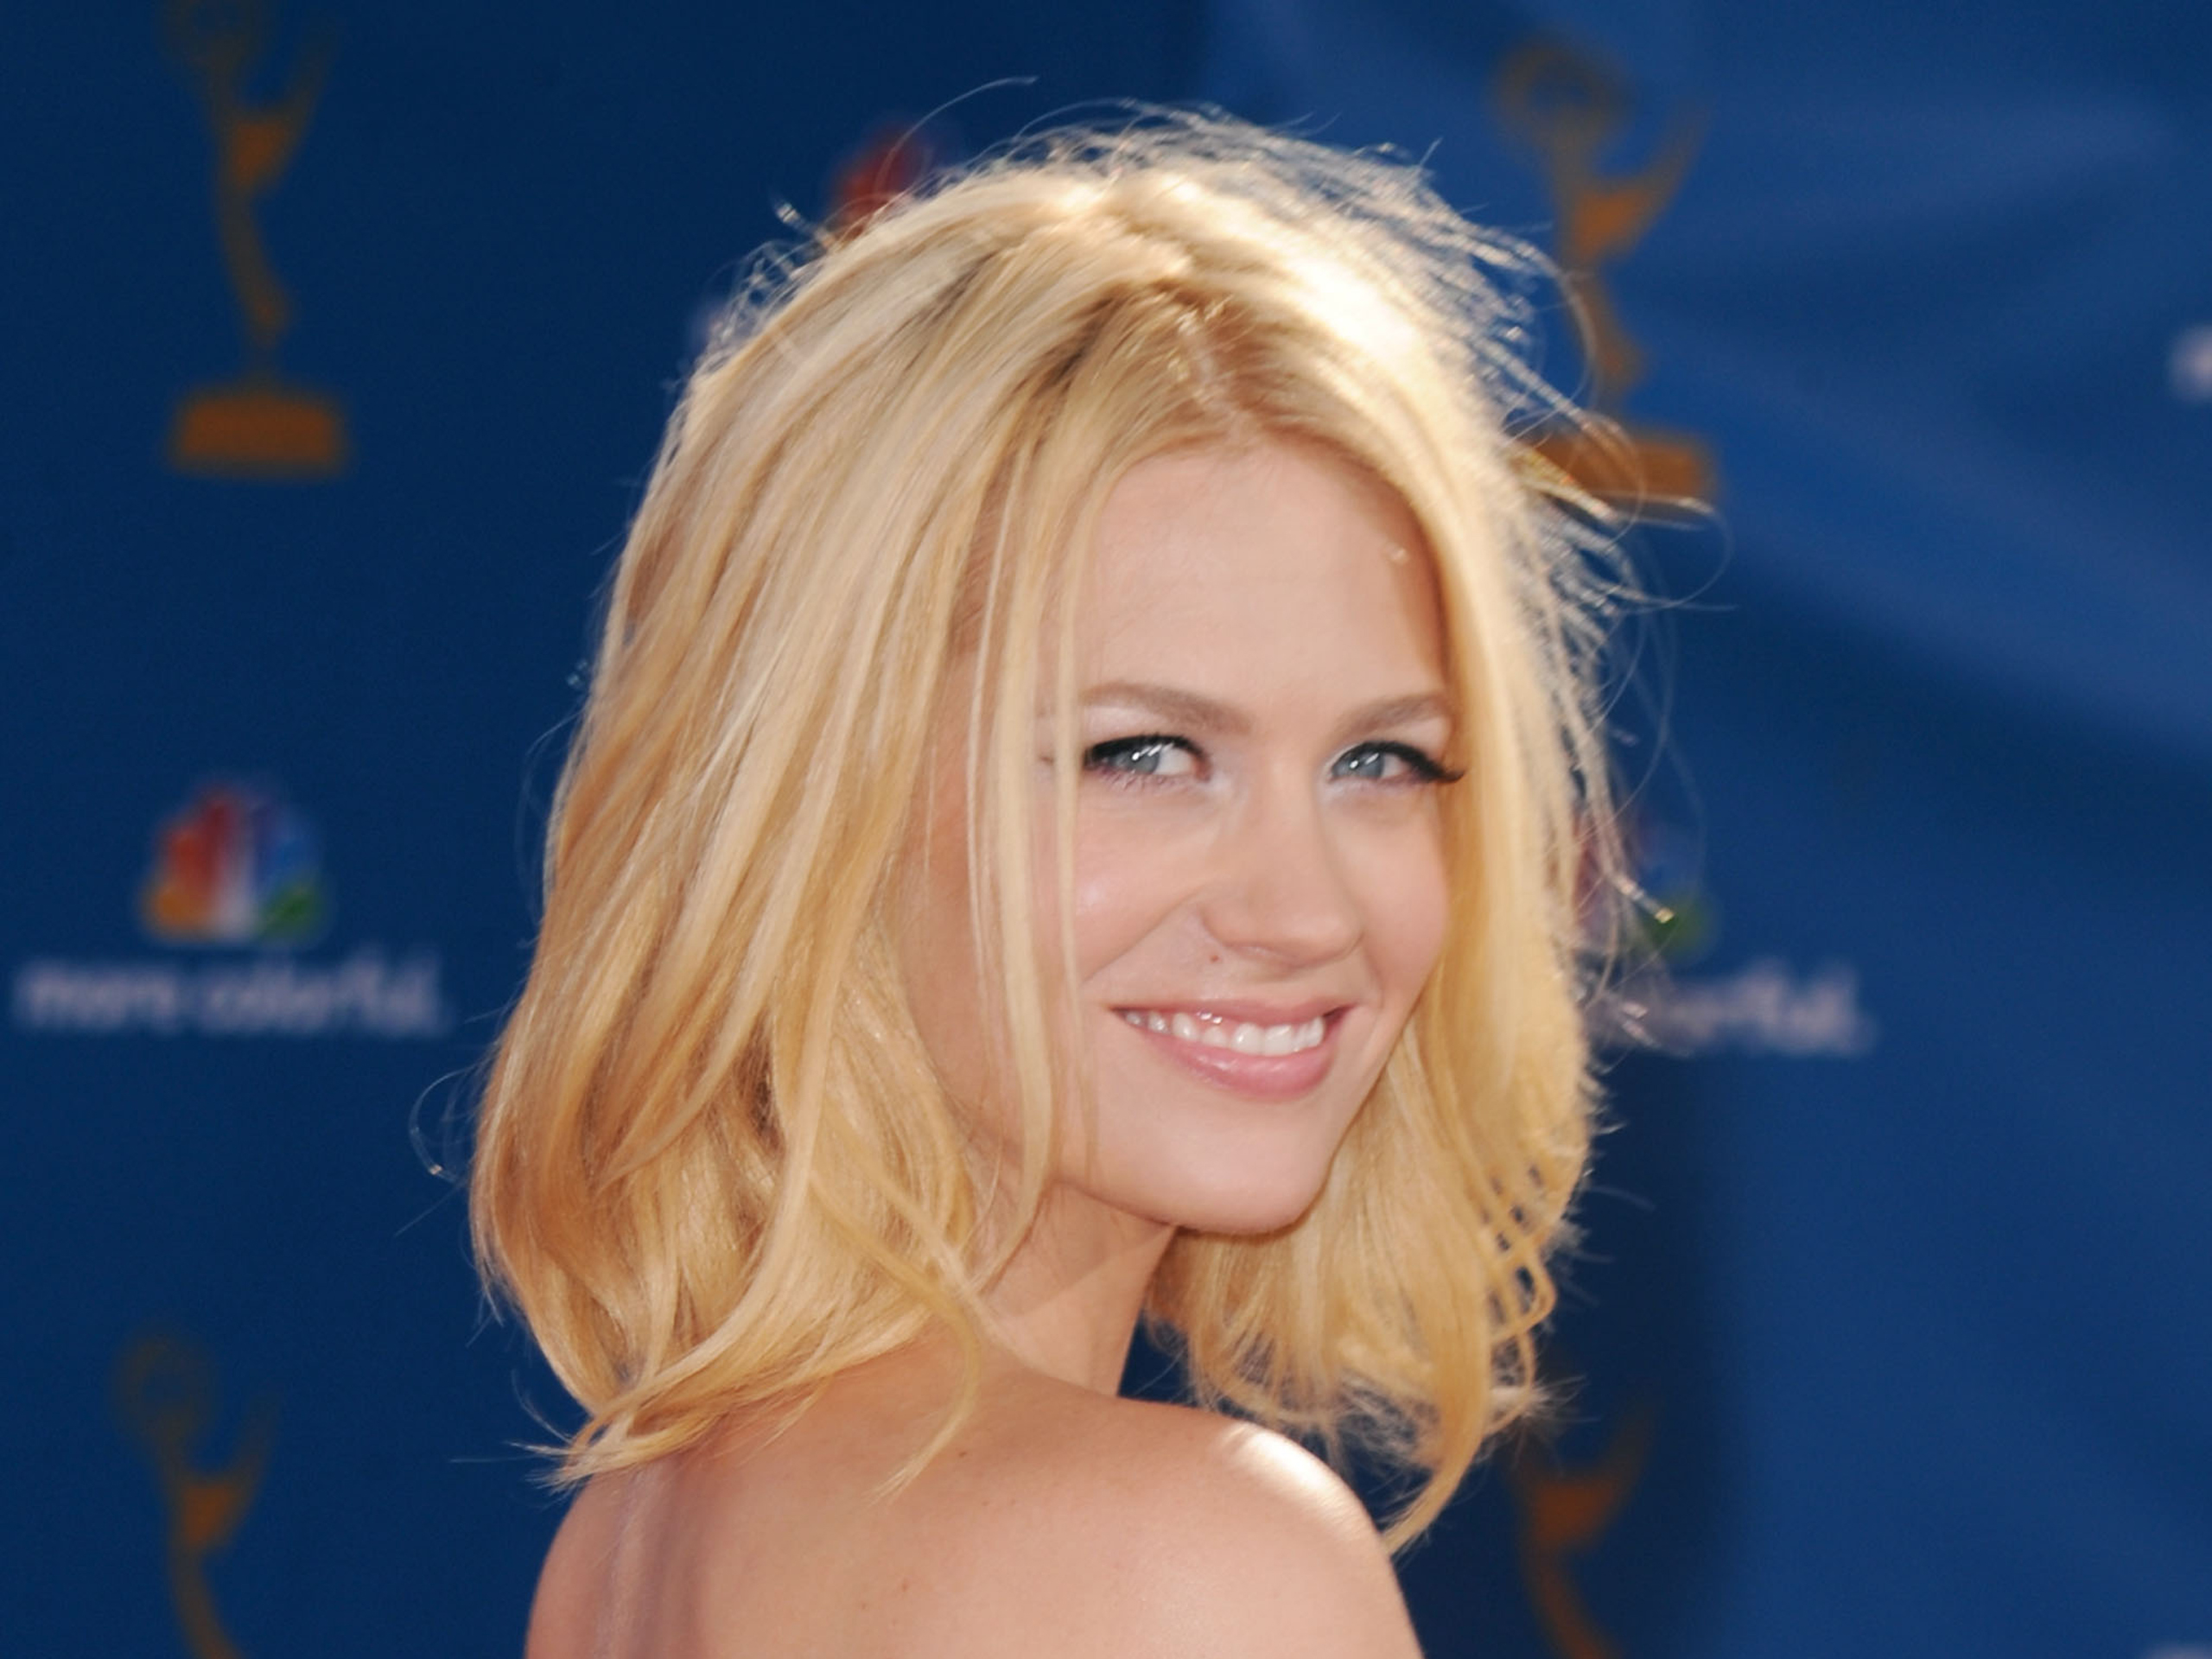 January Jones Wallpapers High Resolution and Quality Download